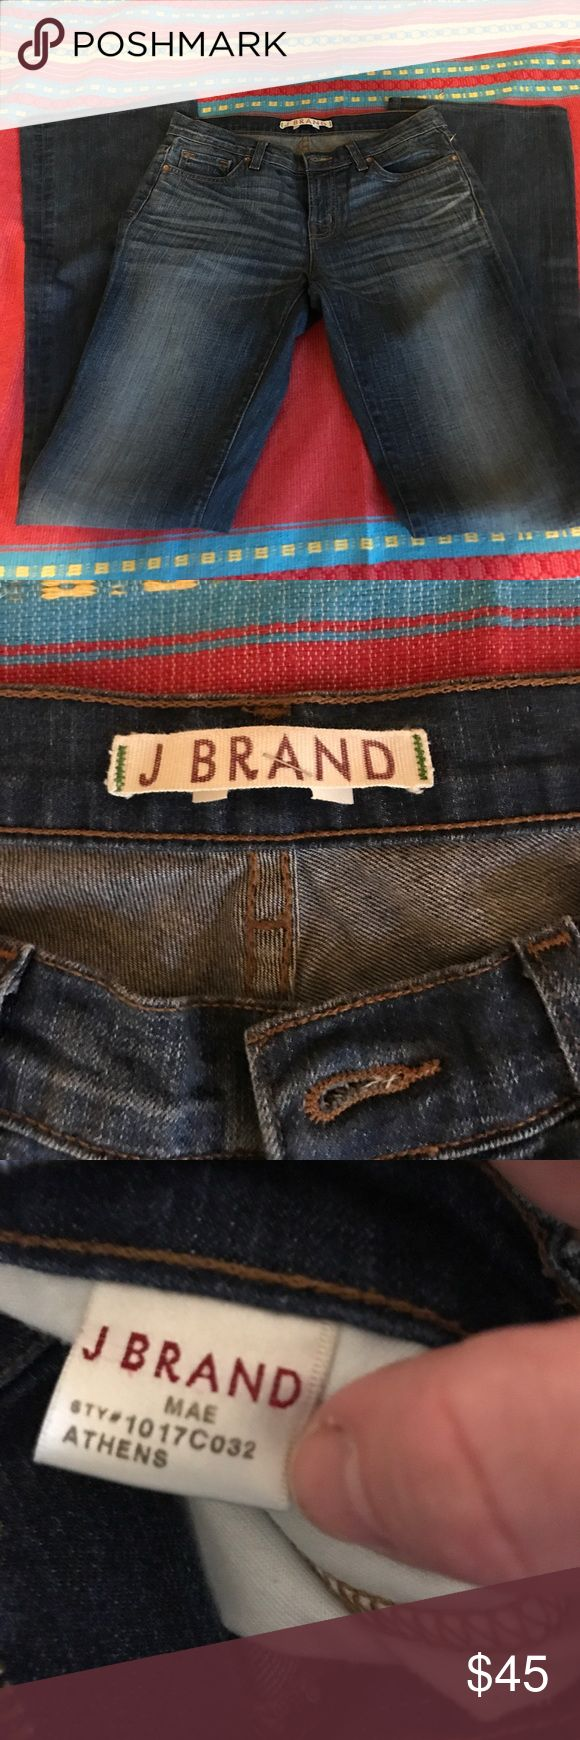 J Brand size 28 These are super cute w wedges! Wide leg used J brand jeans, no damage or stains, great condition! J Brand Jeans Flare & Wide Leg